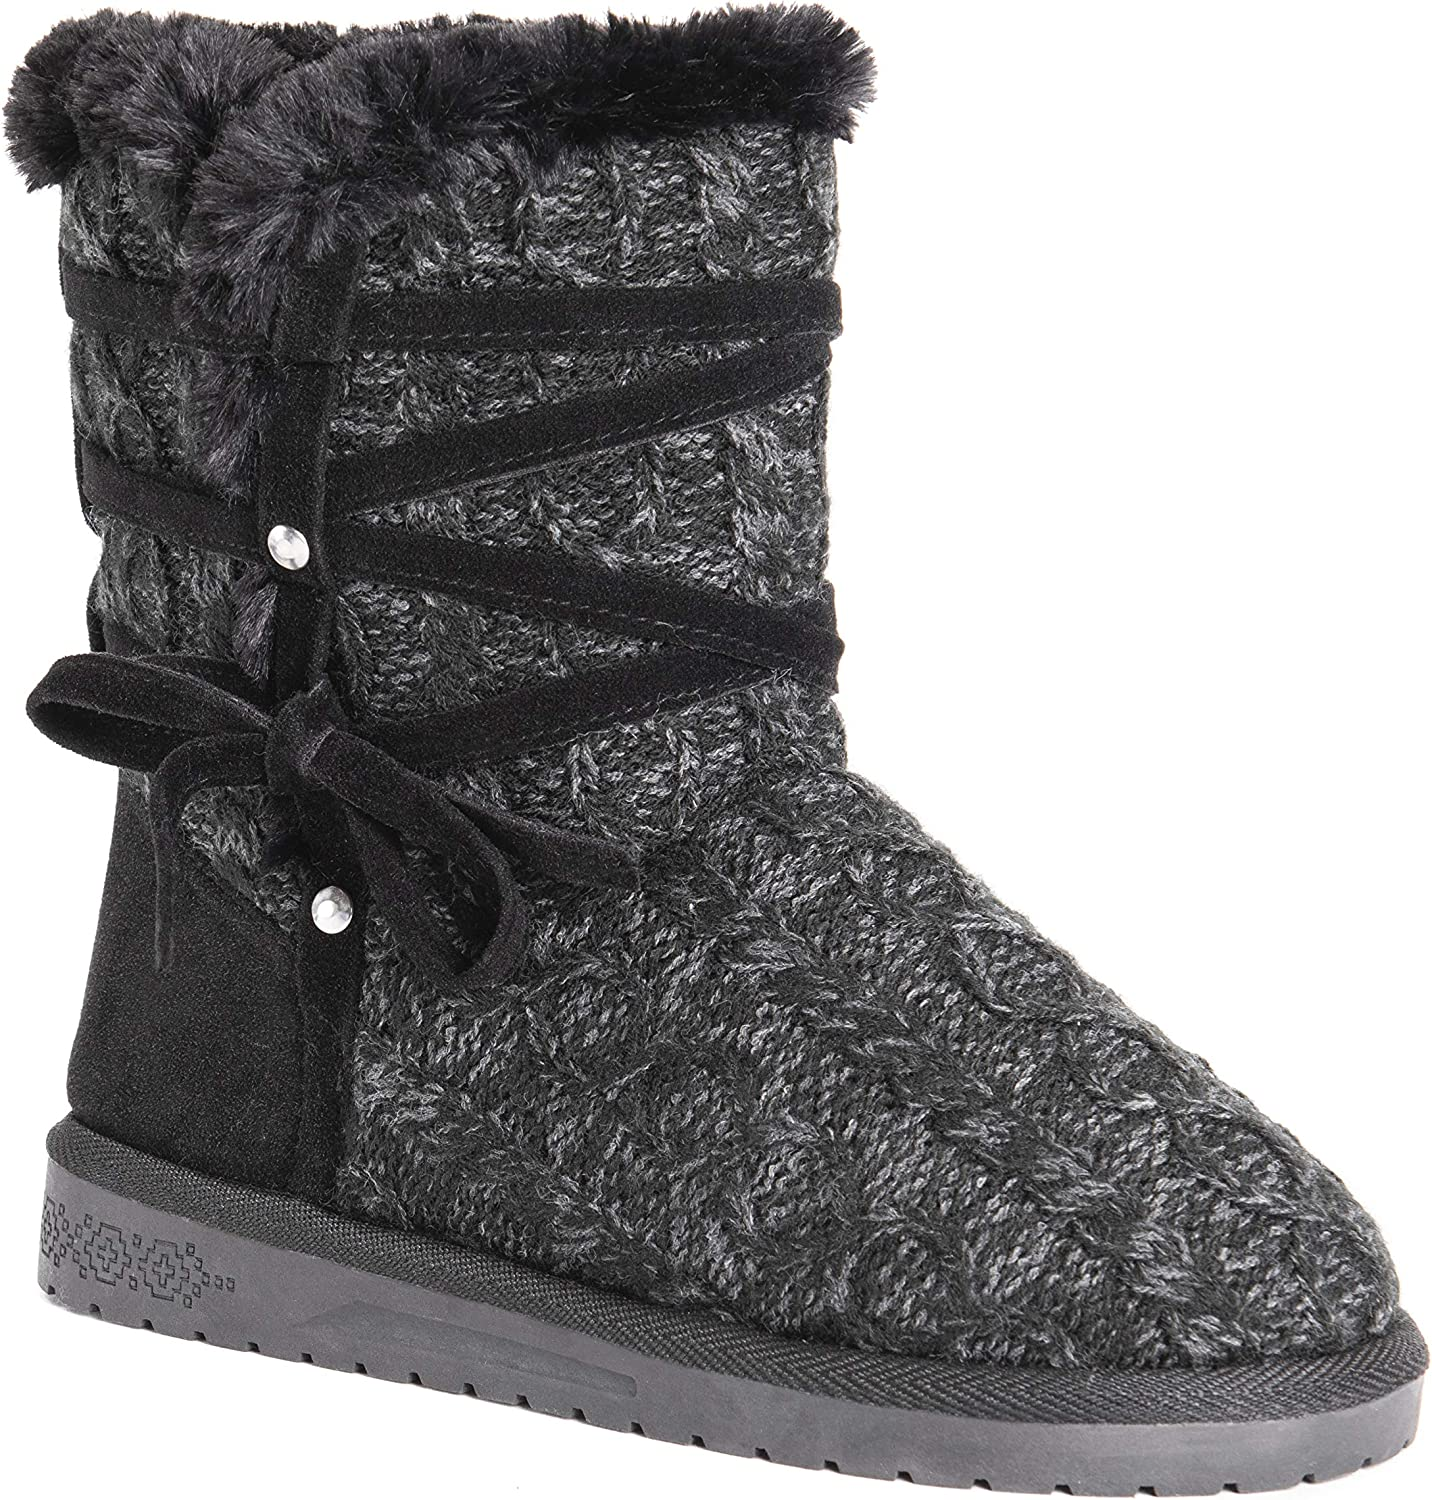 MUK LUKS Womens Women's Camila Boots Fashion Boot